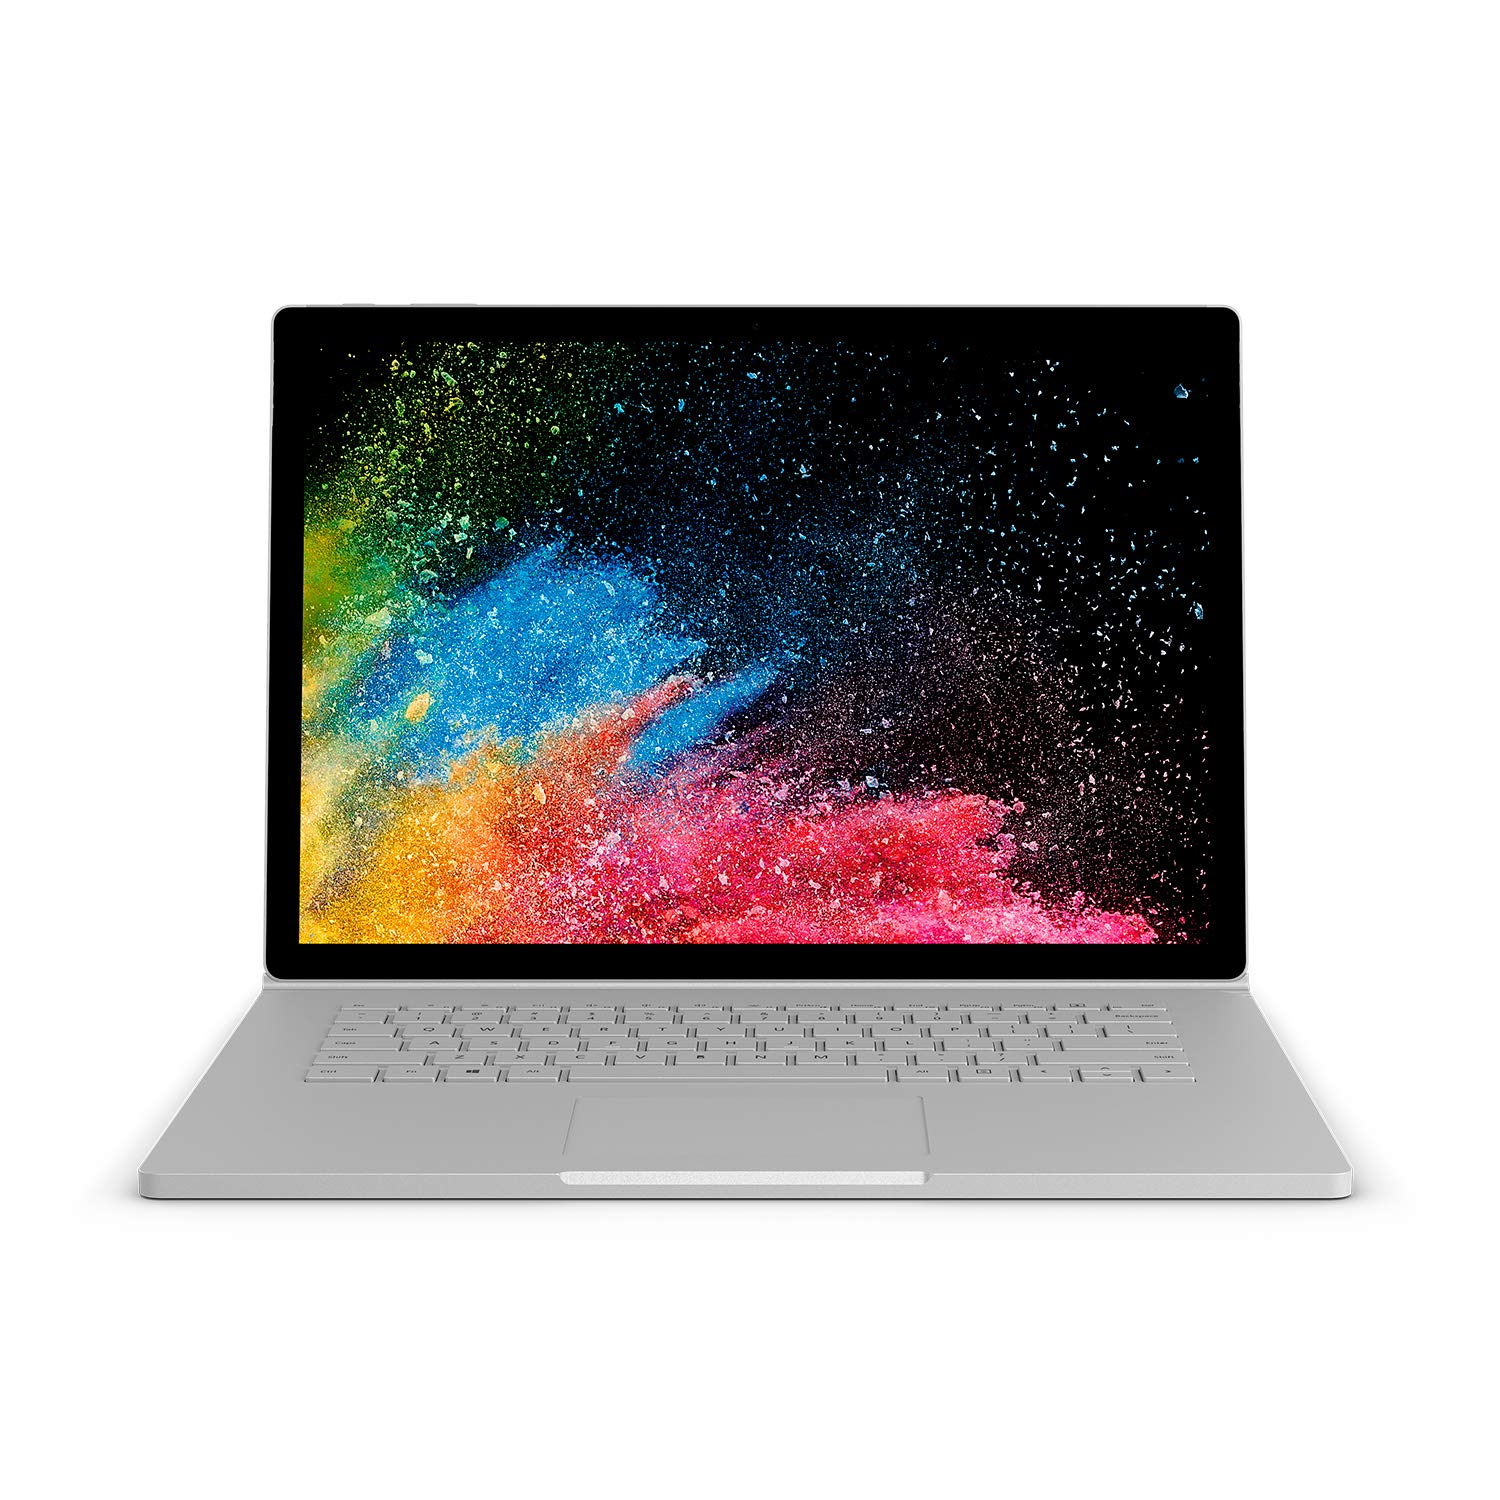 TALLA 15 pulgadas. Microsoft Surface Book 2 - Ordenador portátil convertible táctil 15'' (Intel Core i7-8650U, 16GB RAM, 1TB SSD, Nvidia GeForce GTX1060-6GB, Windows 10 Pro) Plata - Teclado QWERTY Español